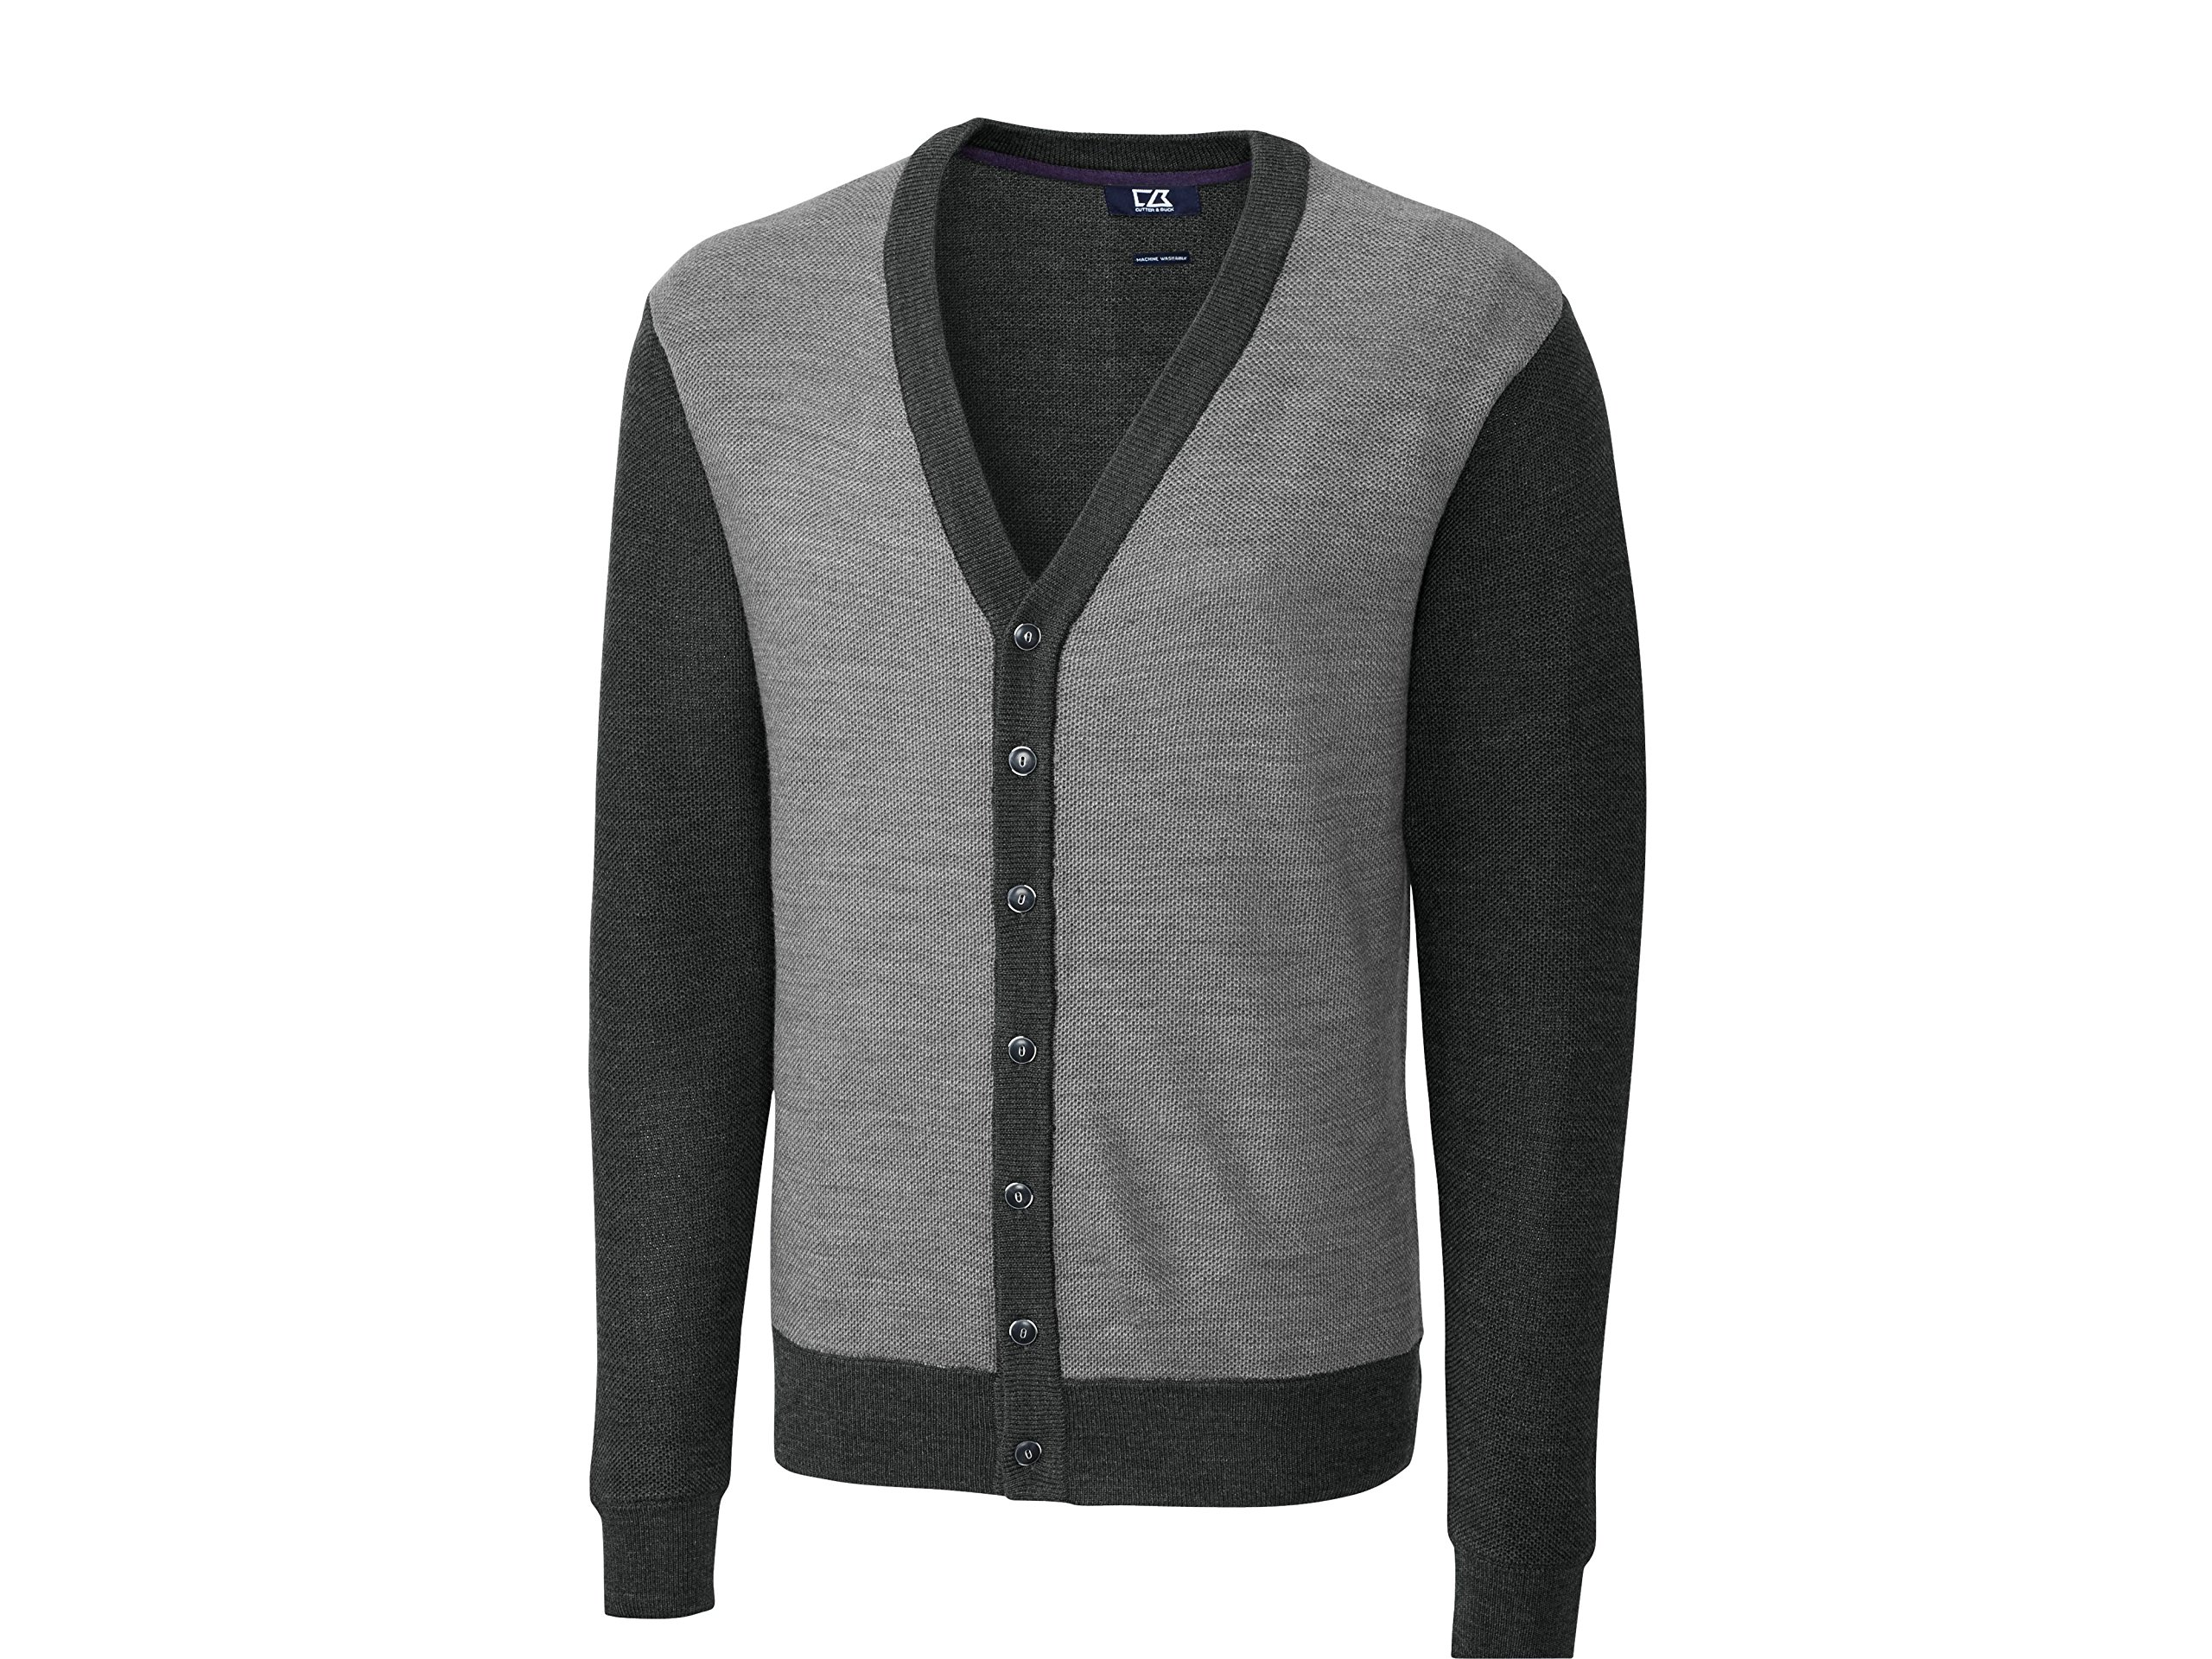 Cutter & Buck Men's Big-Tall Cornish Cardigan Sweater, Charcoal Heather, 3X/Big